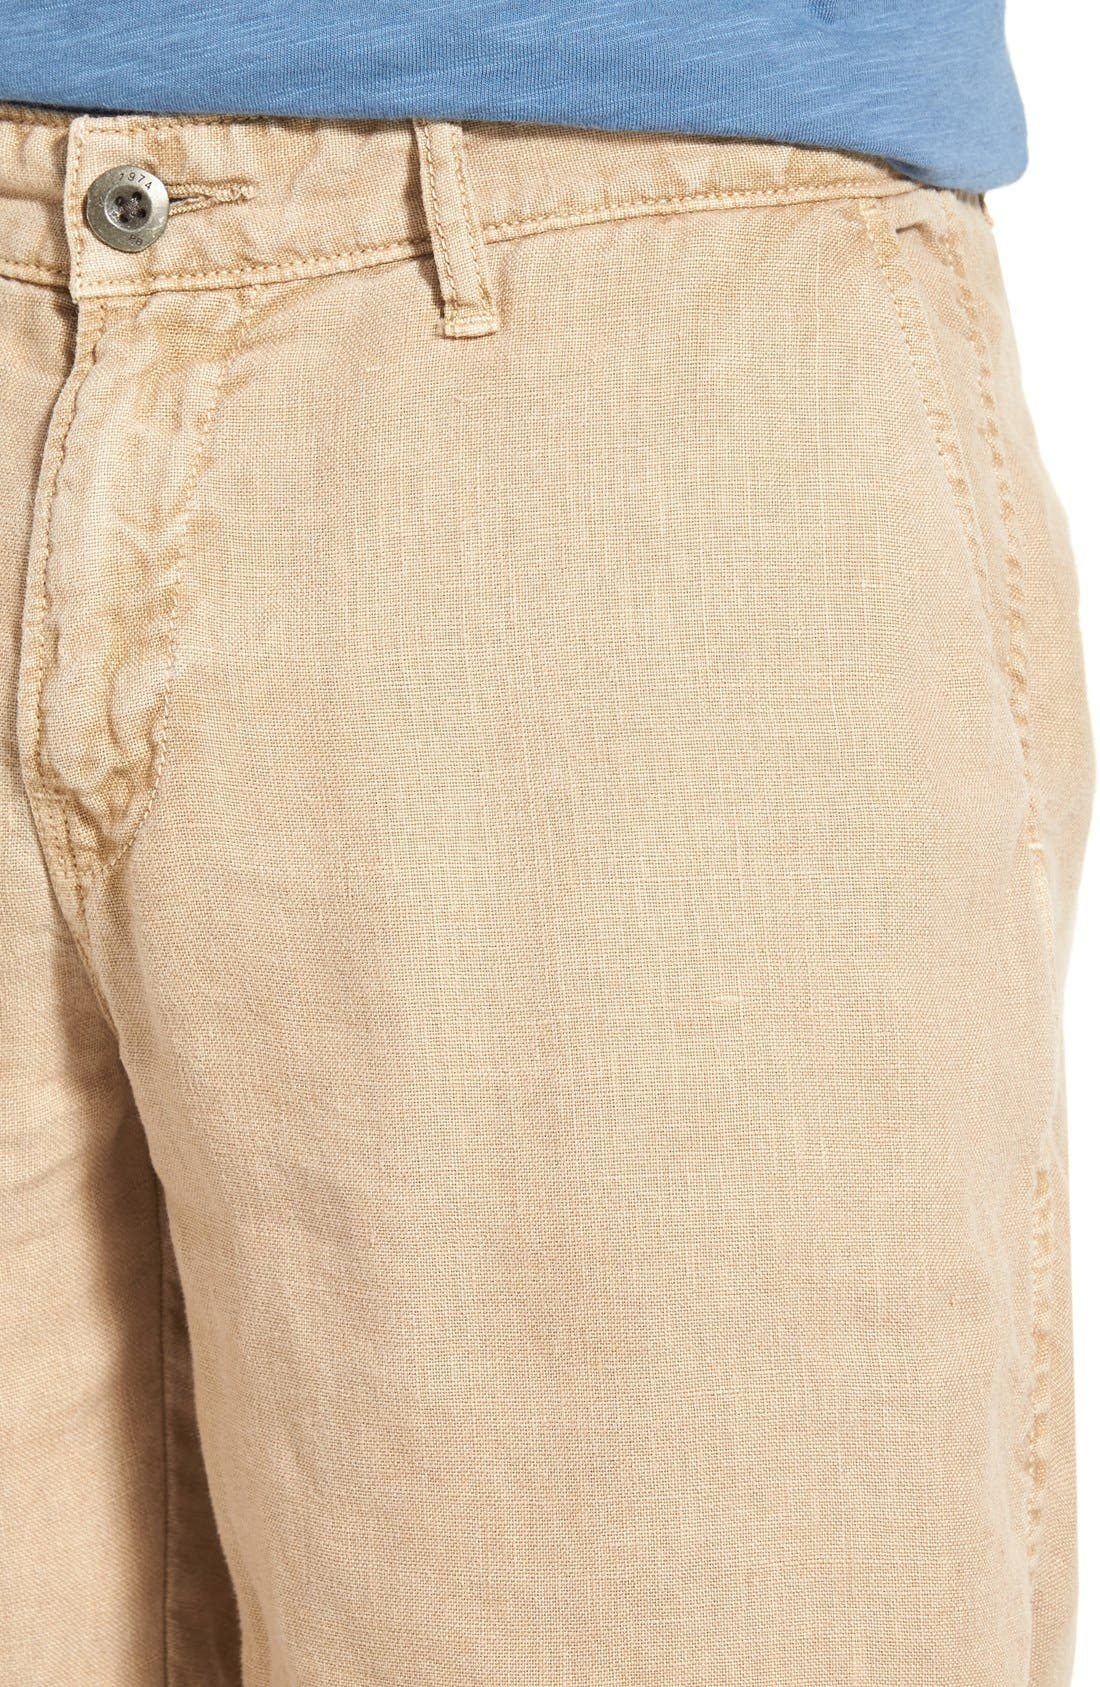 'Havana' Linen Shorts,                             Alternate thumbnail 14, color,